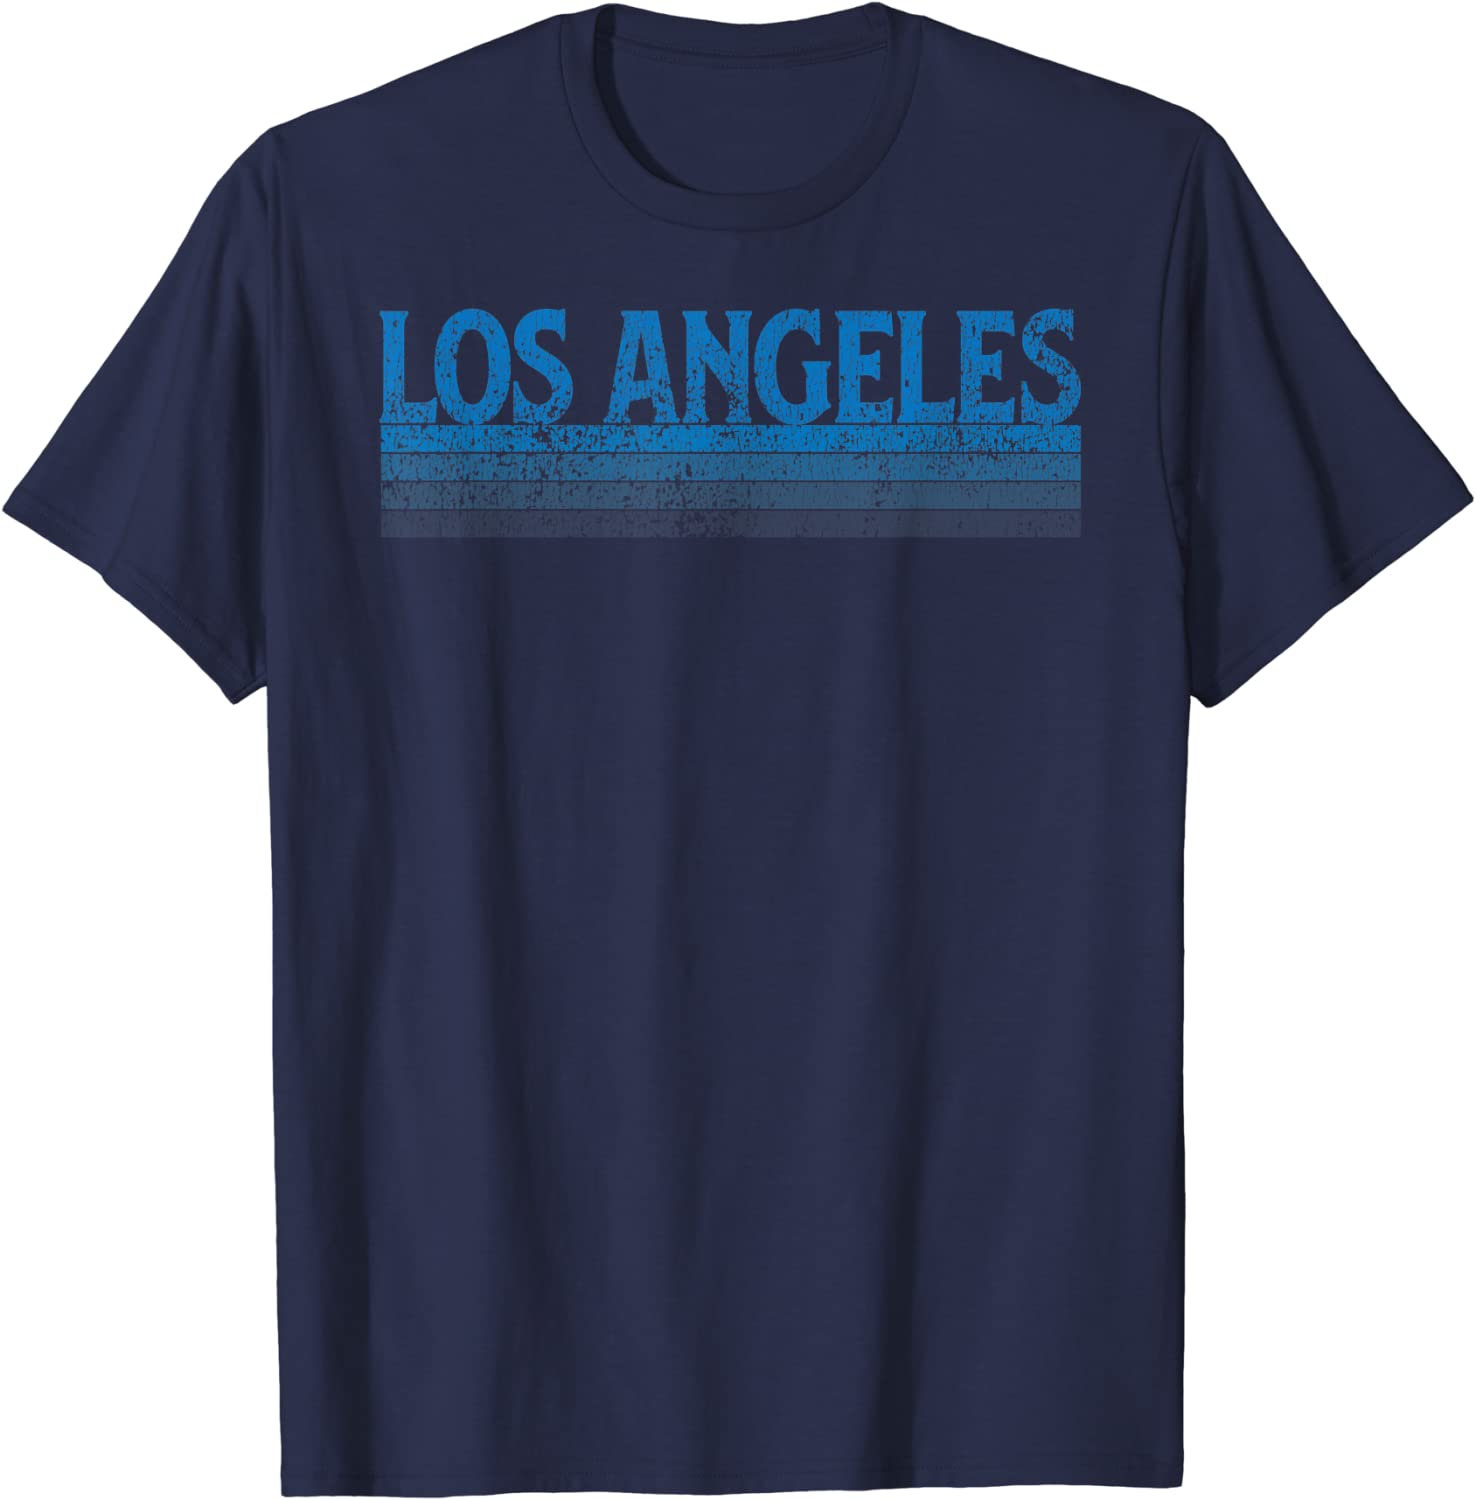 Vintage 1980s Style Los Angeles California T-Shirt